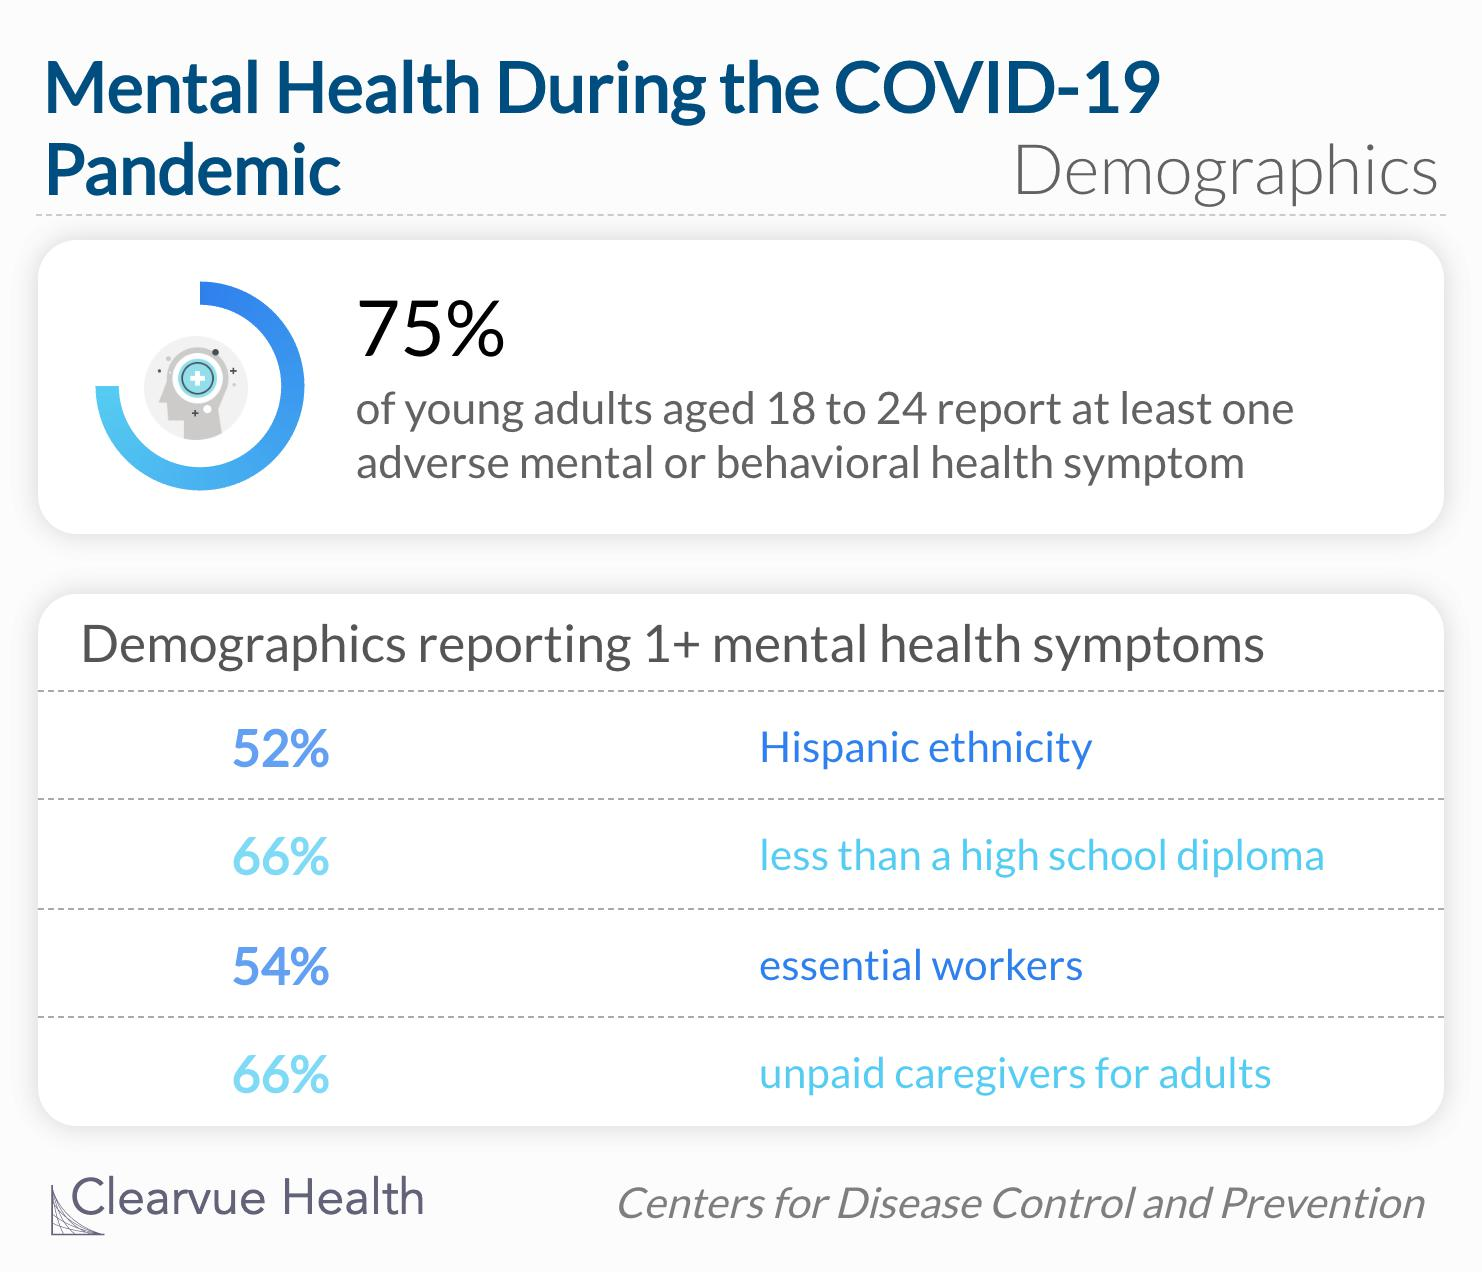 Younger adults, racial/ethnic minorities, essential workers, and unpaid adult caregivers reported having experienced disproportionately worse mental health outcomes, increased substance use, and elevated suicidal ideation.